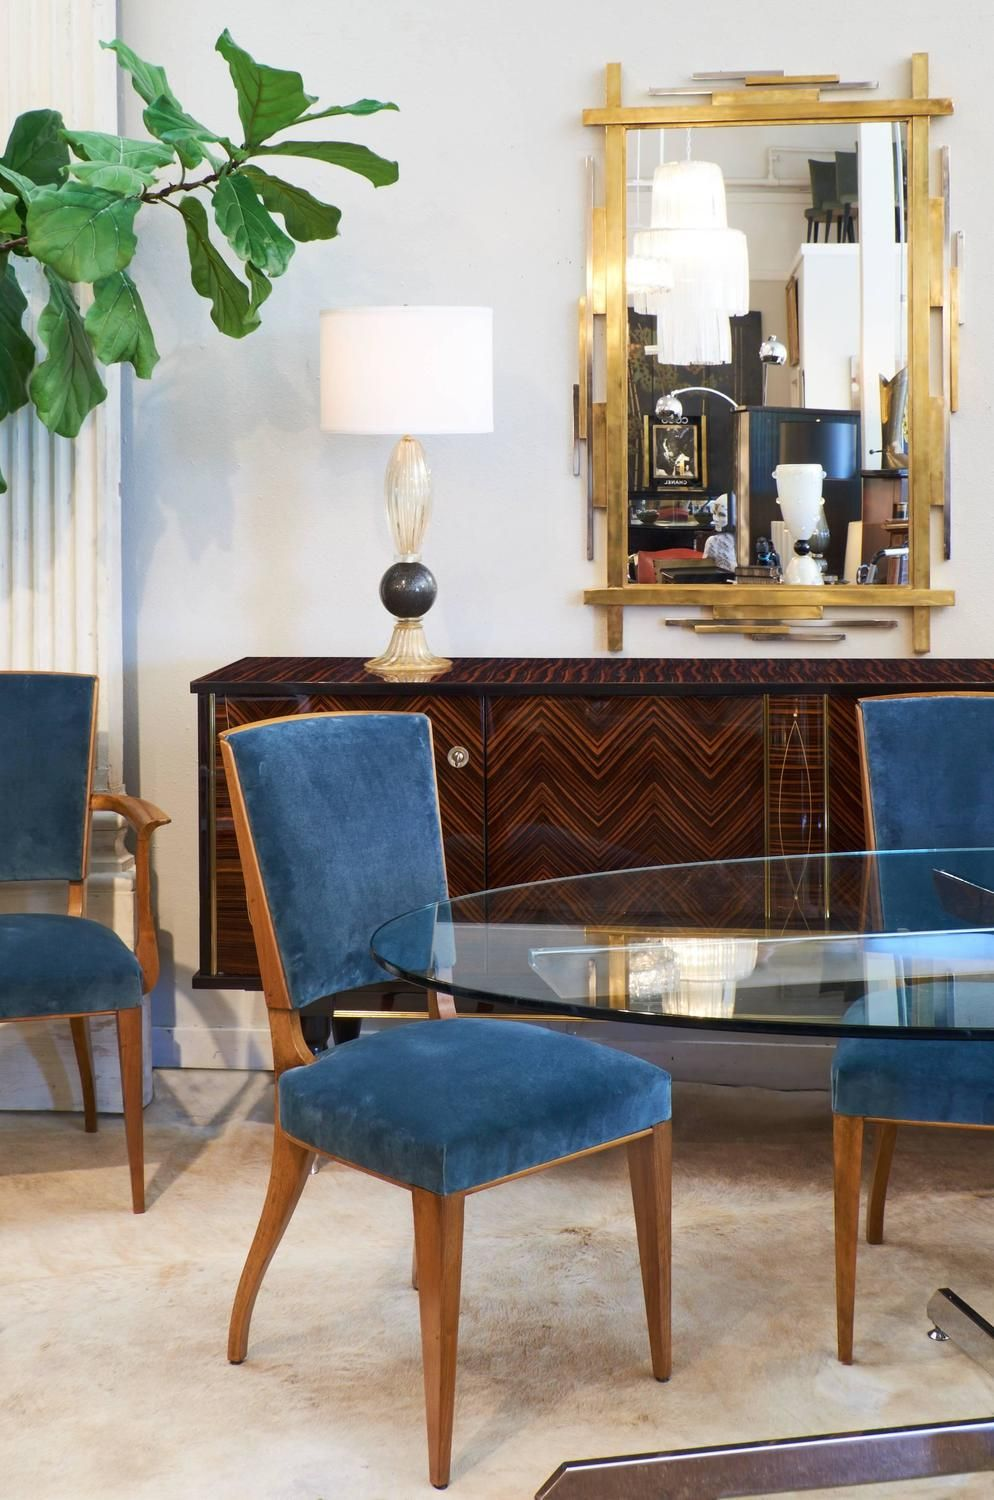 Pin by Antonis Leventis on '50s '60s furniture and home